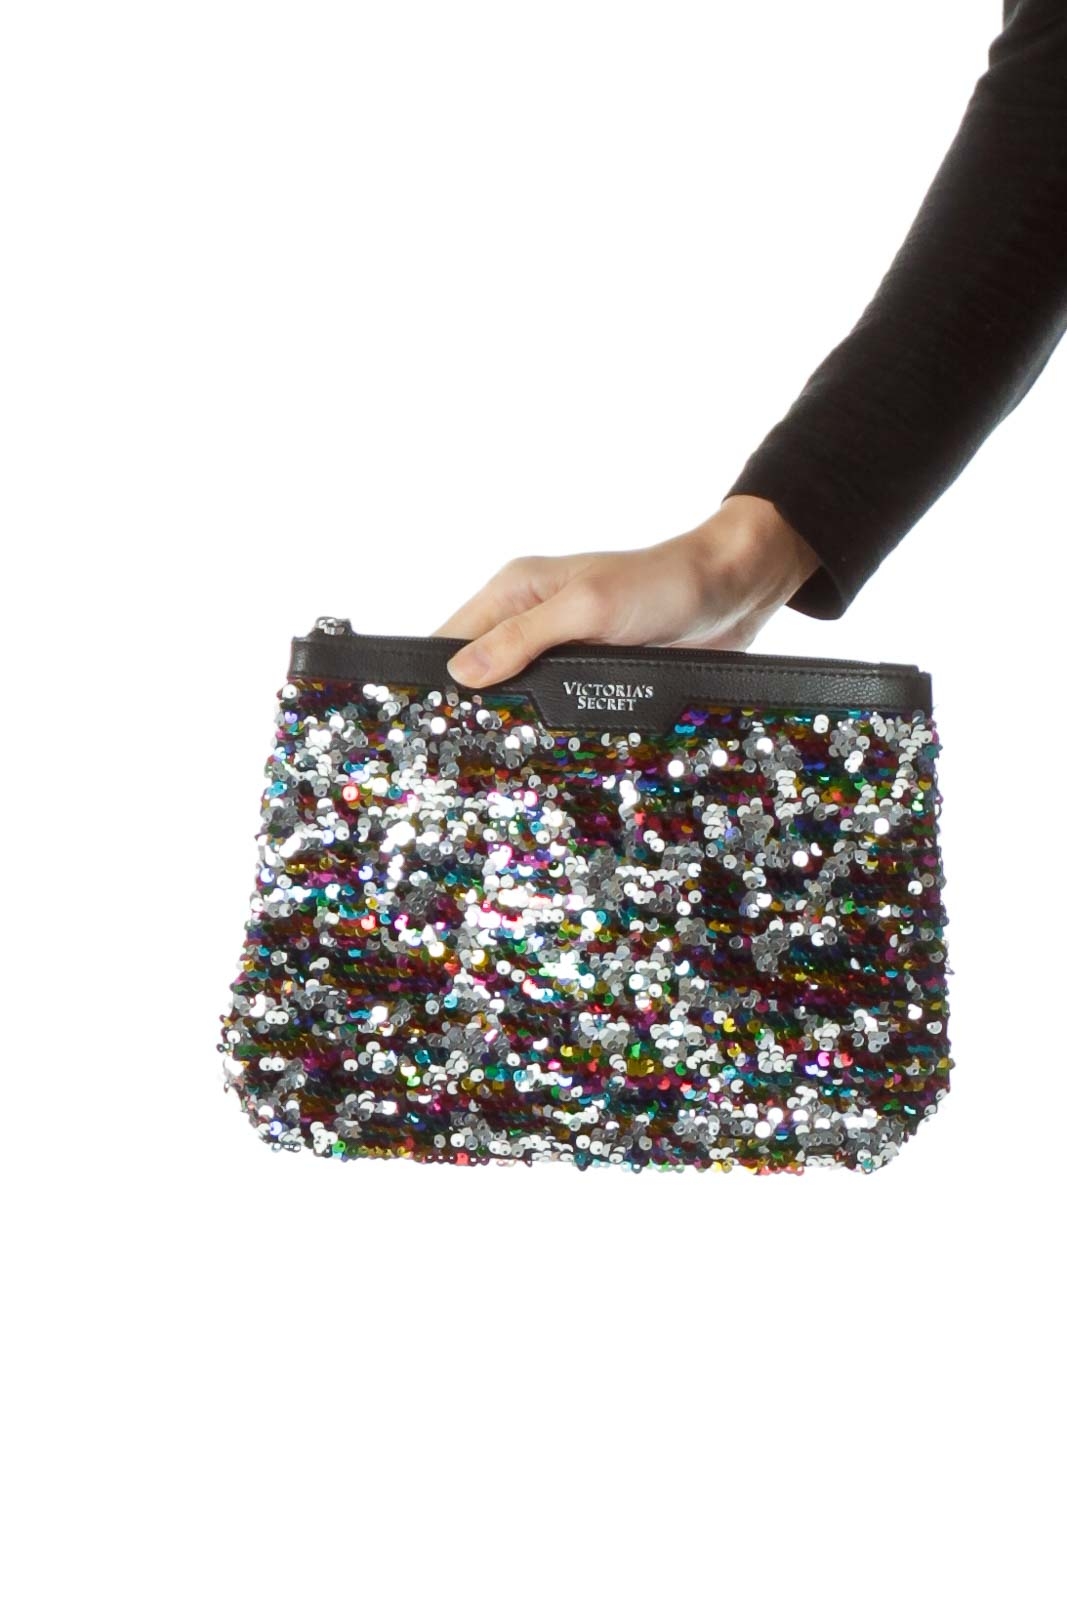 Multicolored Sequined Clutch with Tassle